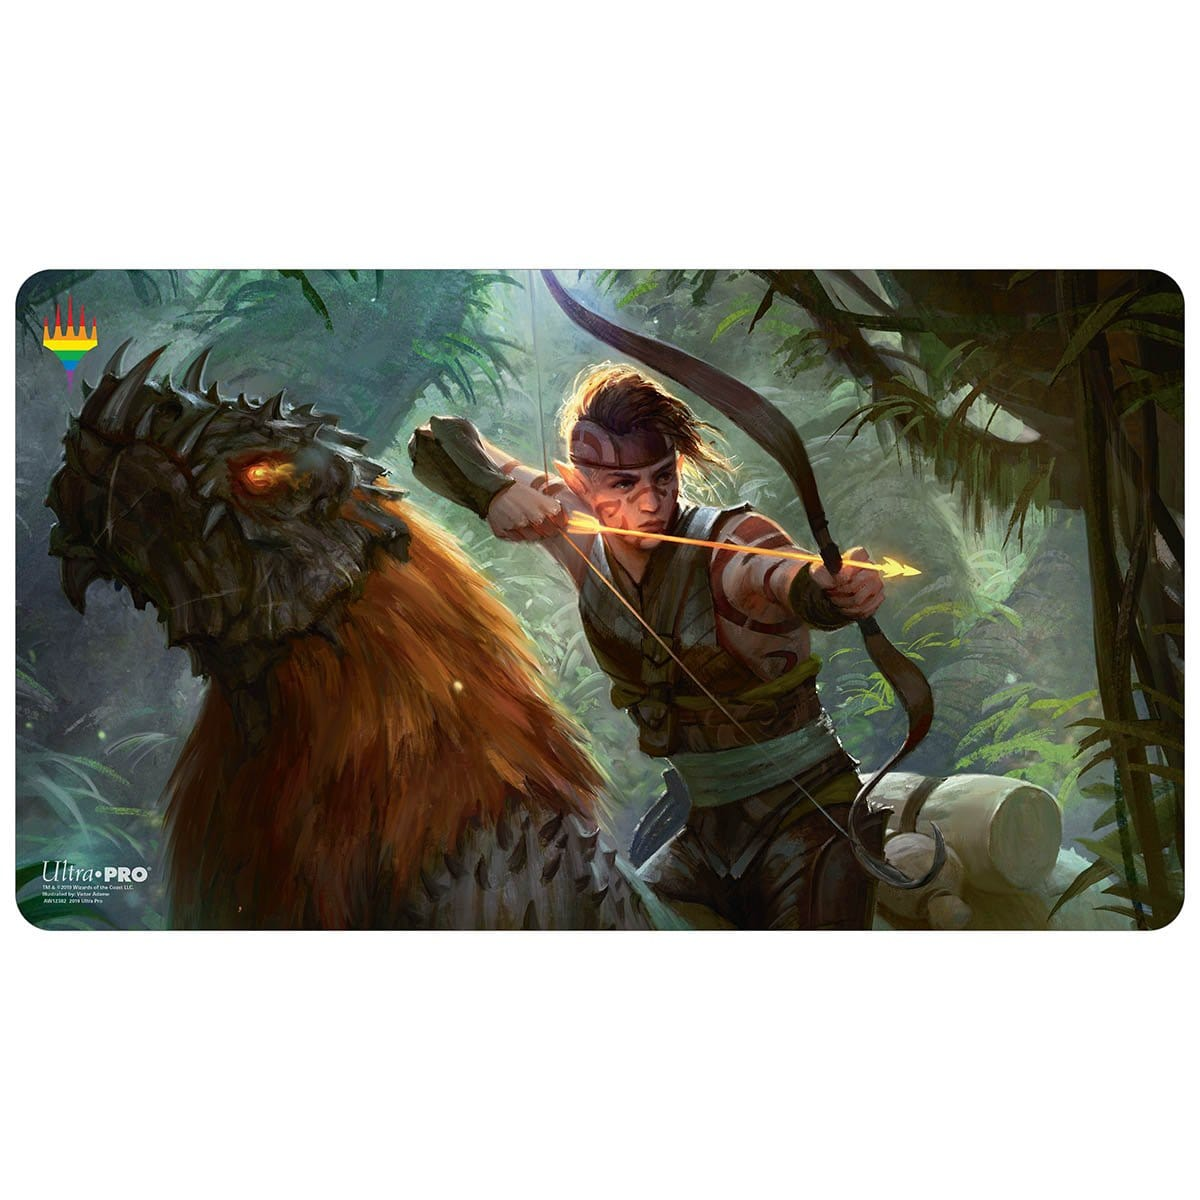 Hallar, the Firefletcher Playmat - Pride 2019 - Playmat - Original Magic Art - Accessories for Magic the Gathering and other card games